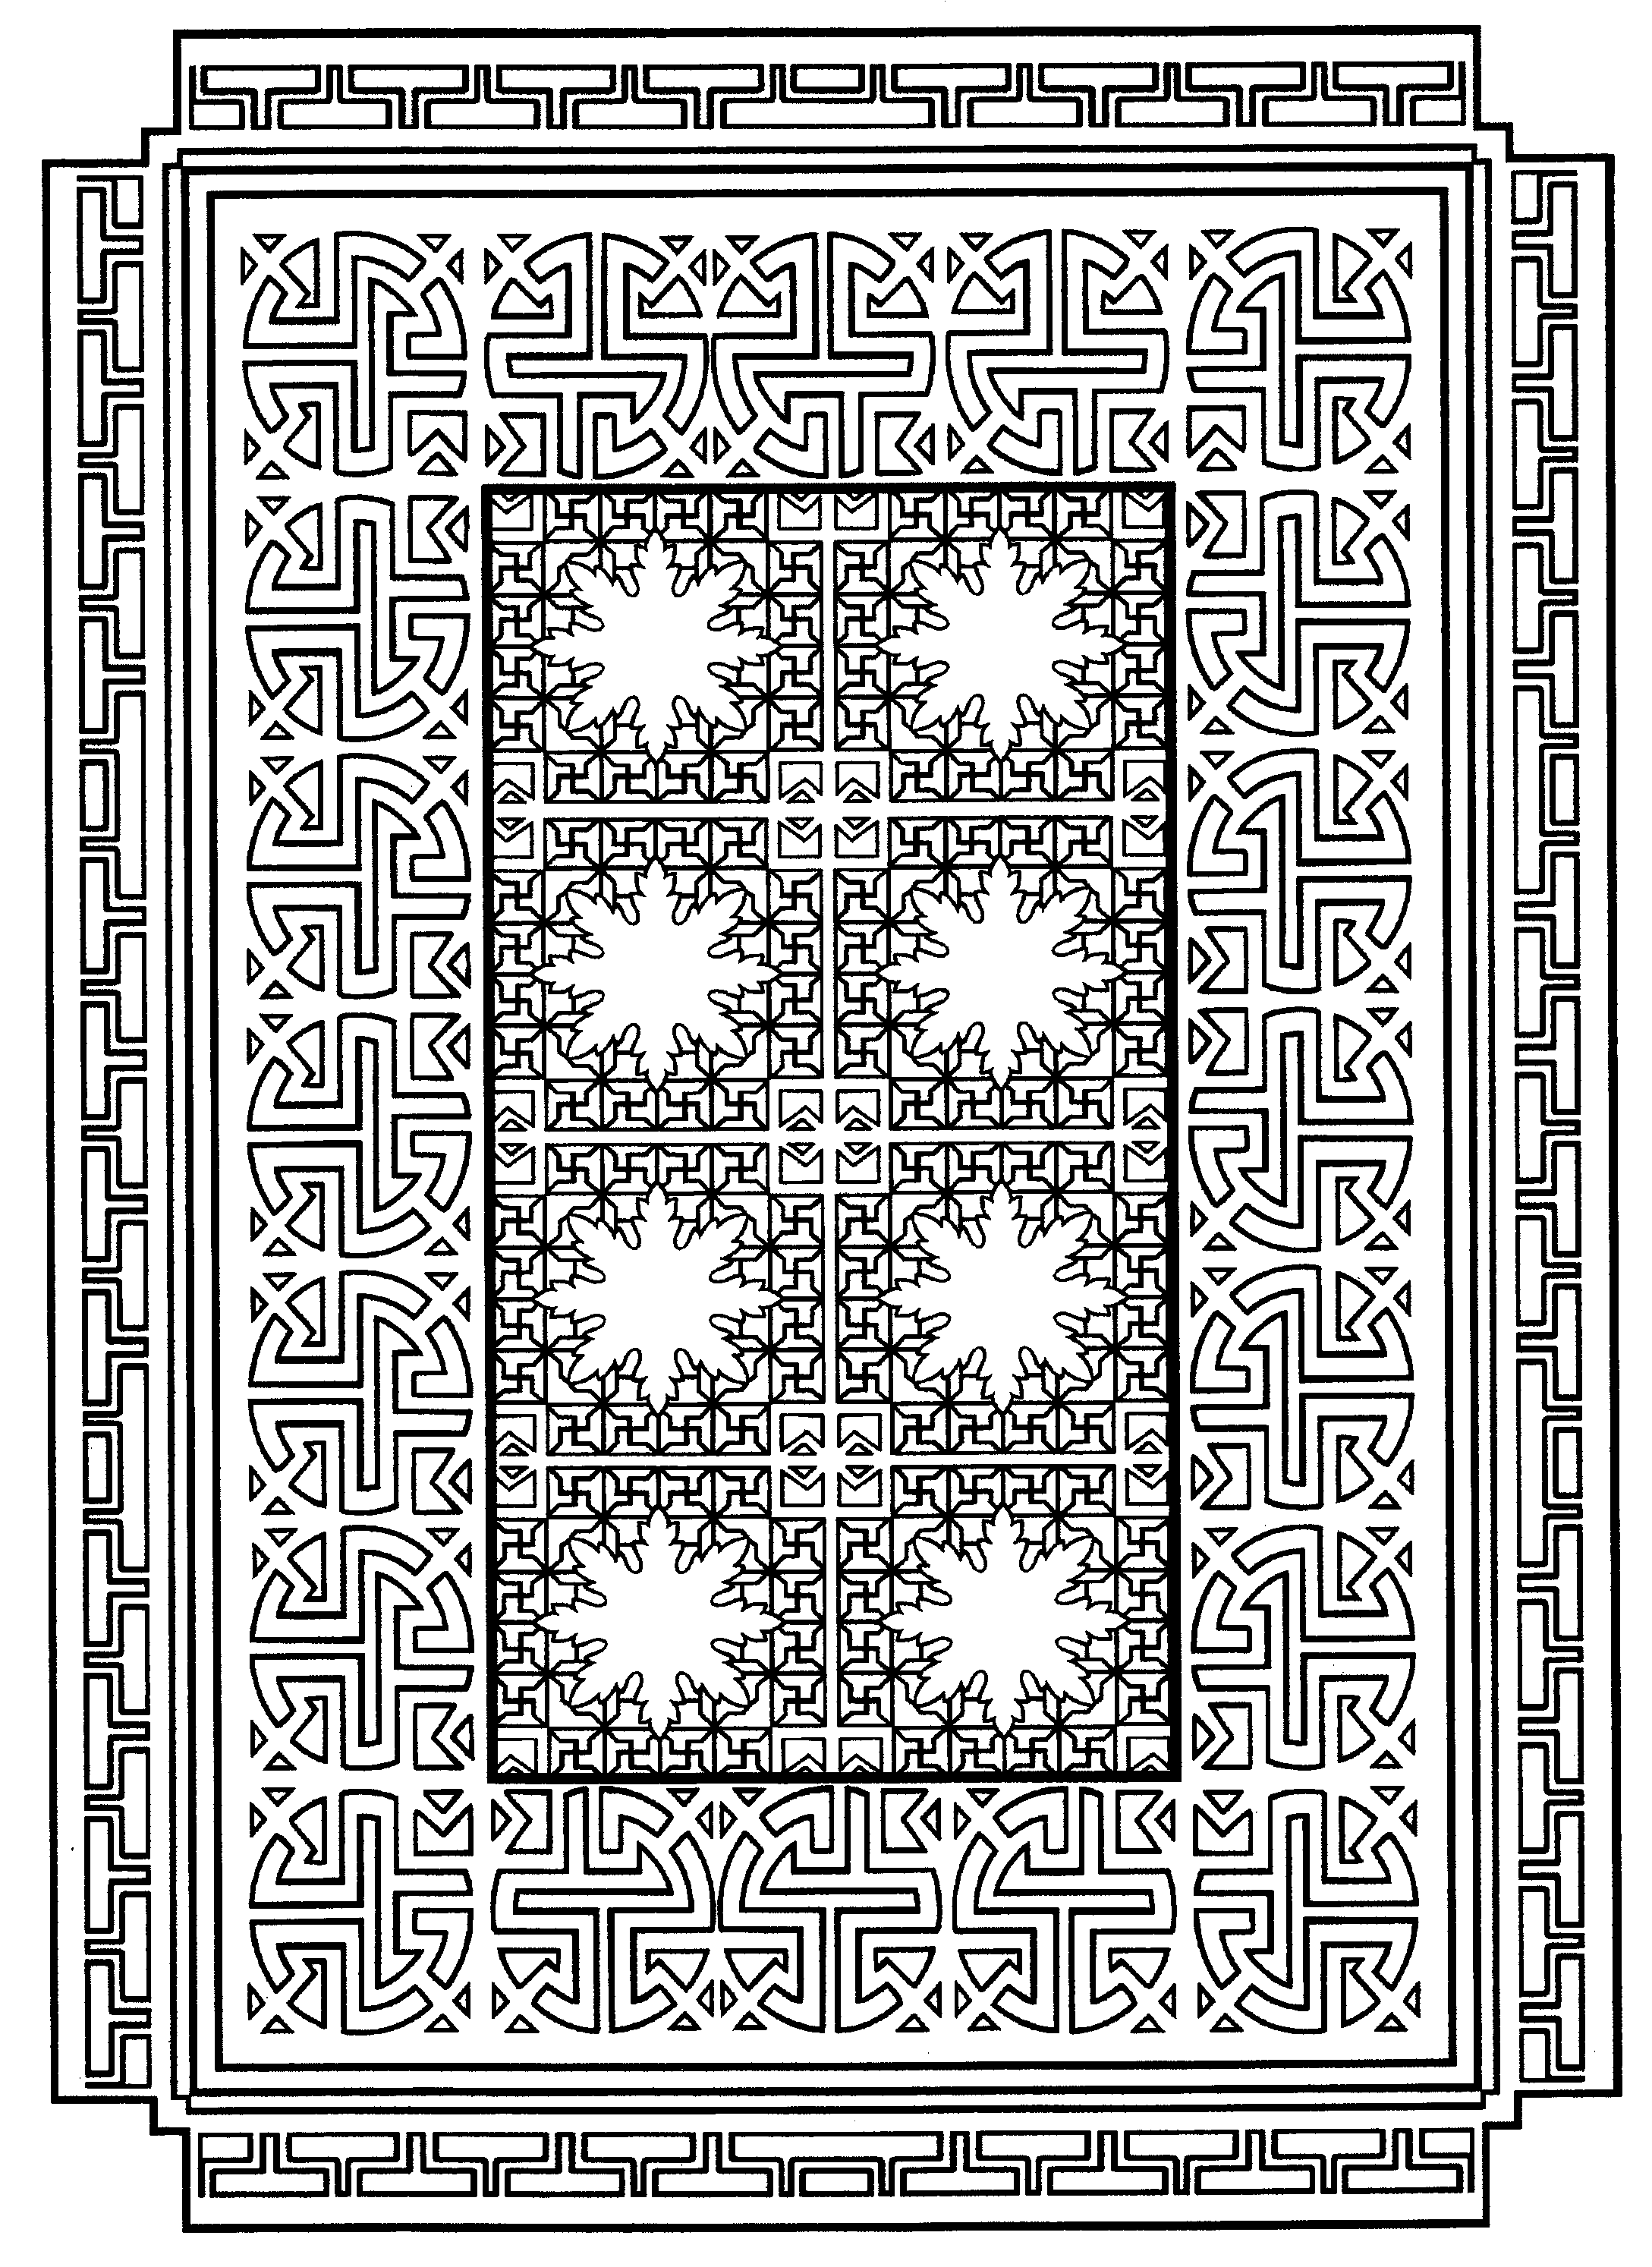 Page 21 from Decorative Tile Designs by Marty Noble